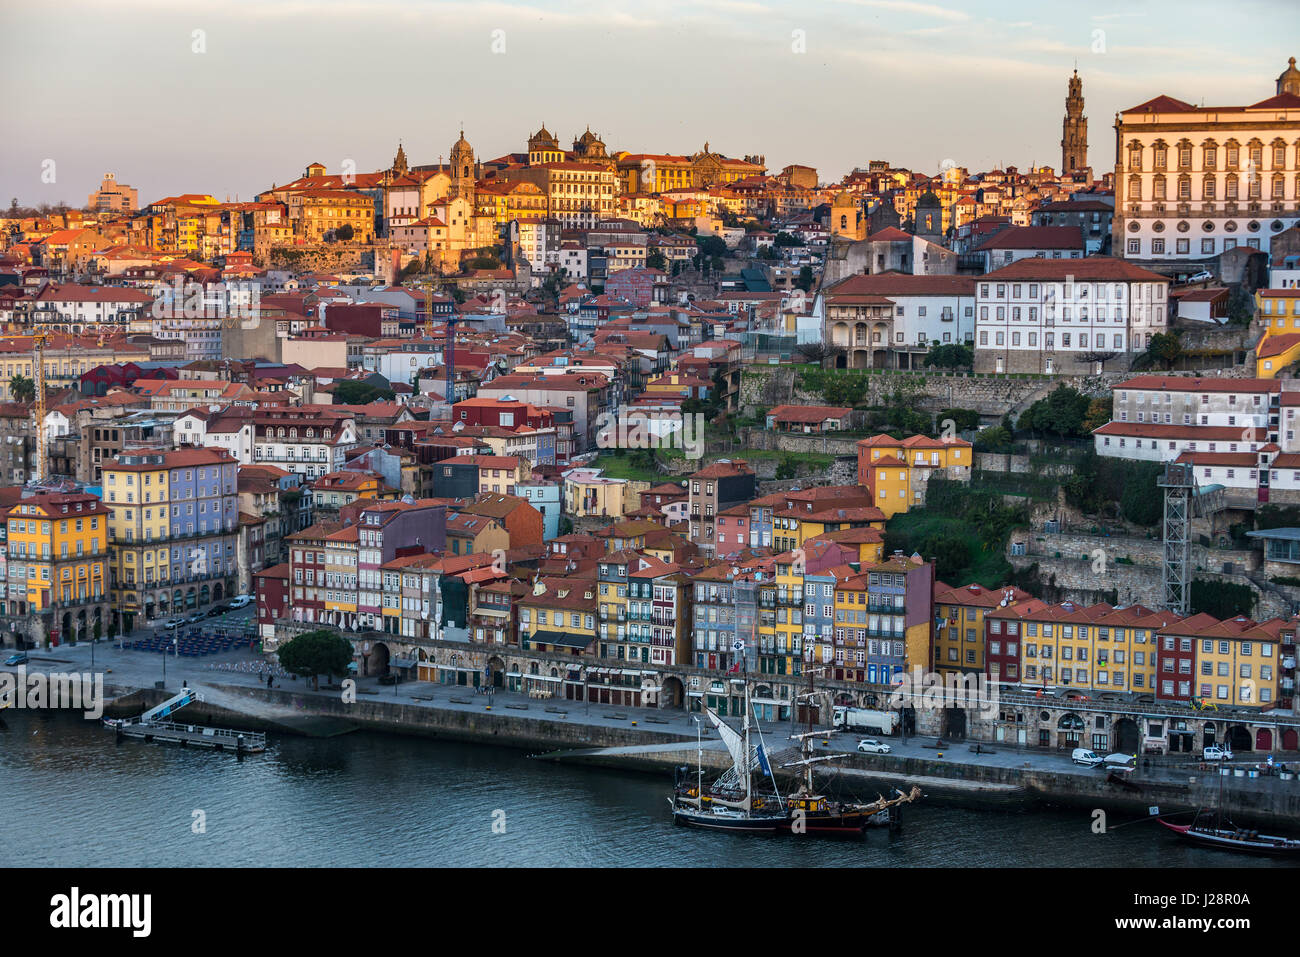 Ribeira District in Porto city on Iberian Peninsula, second largest city in Portugal - Stock Image